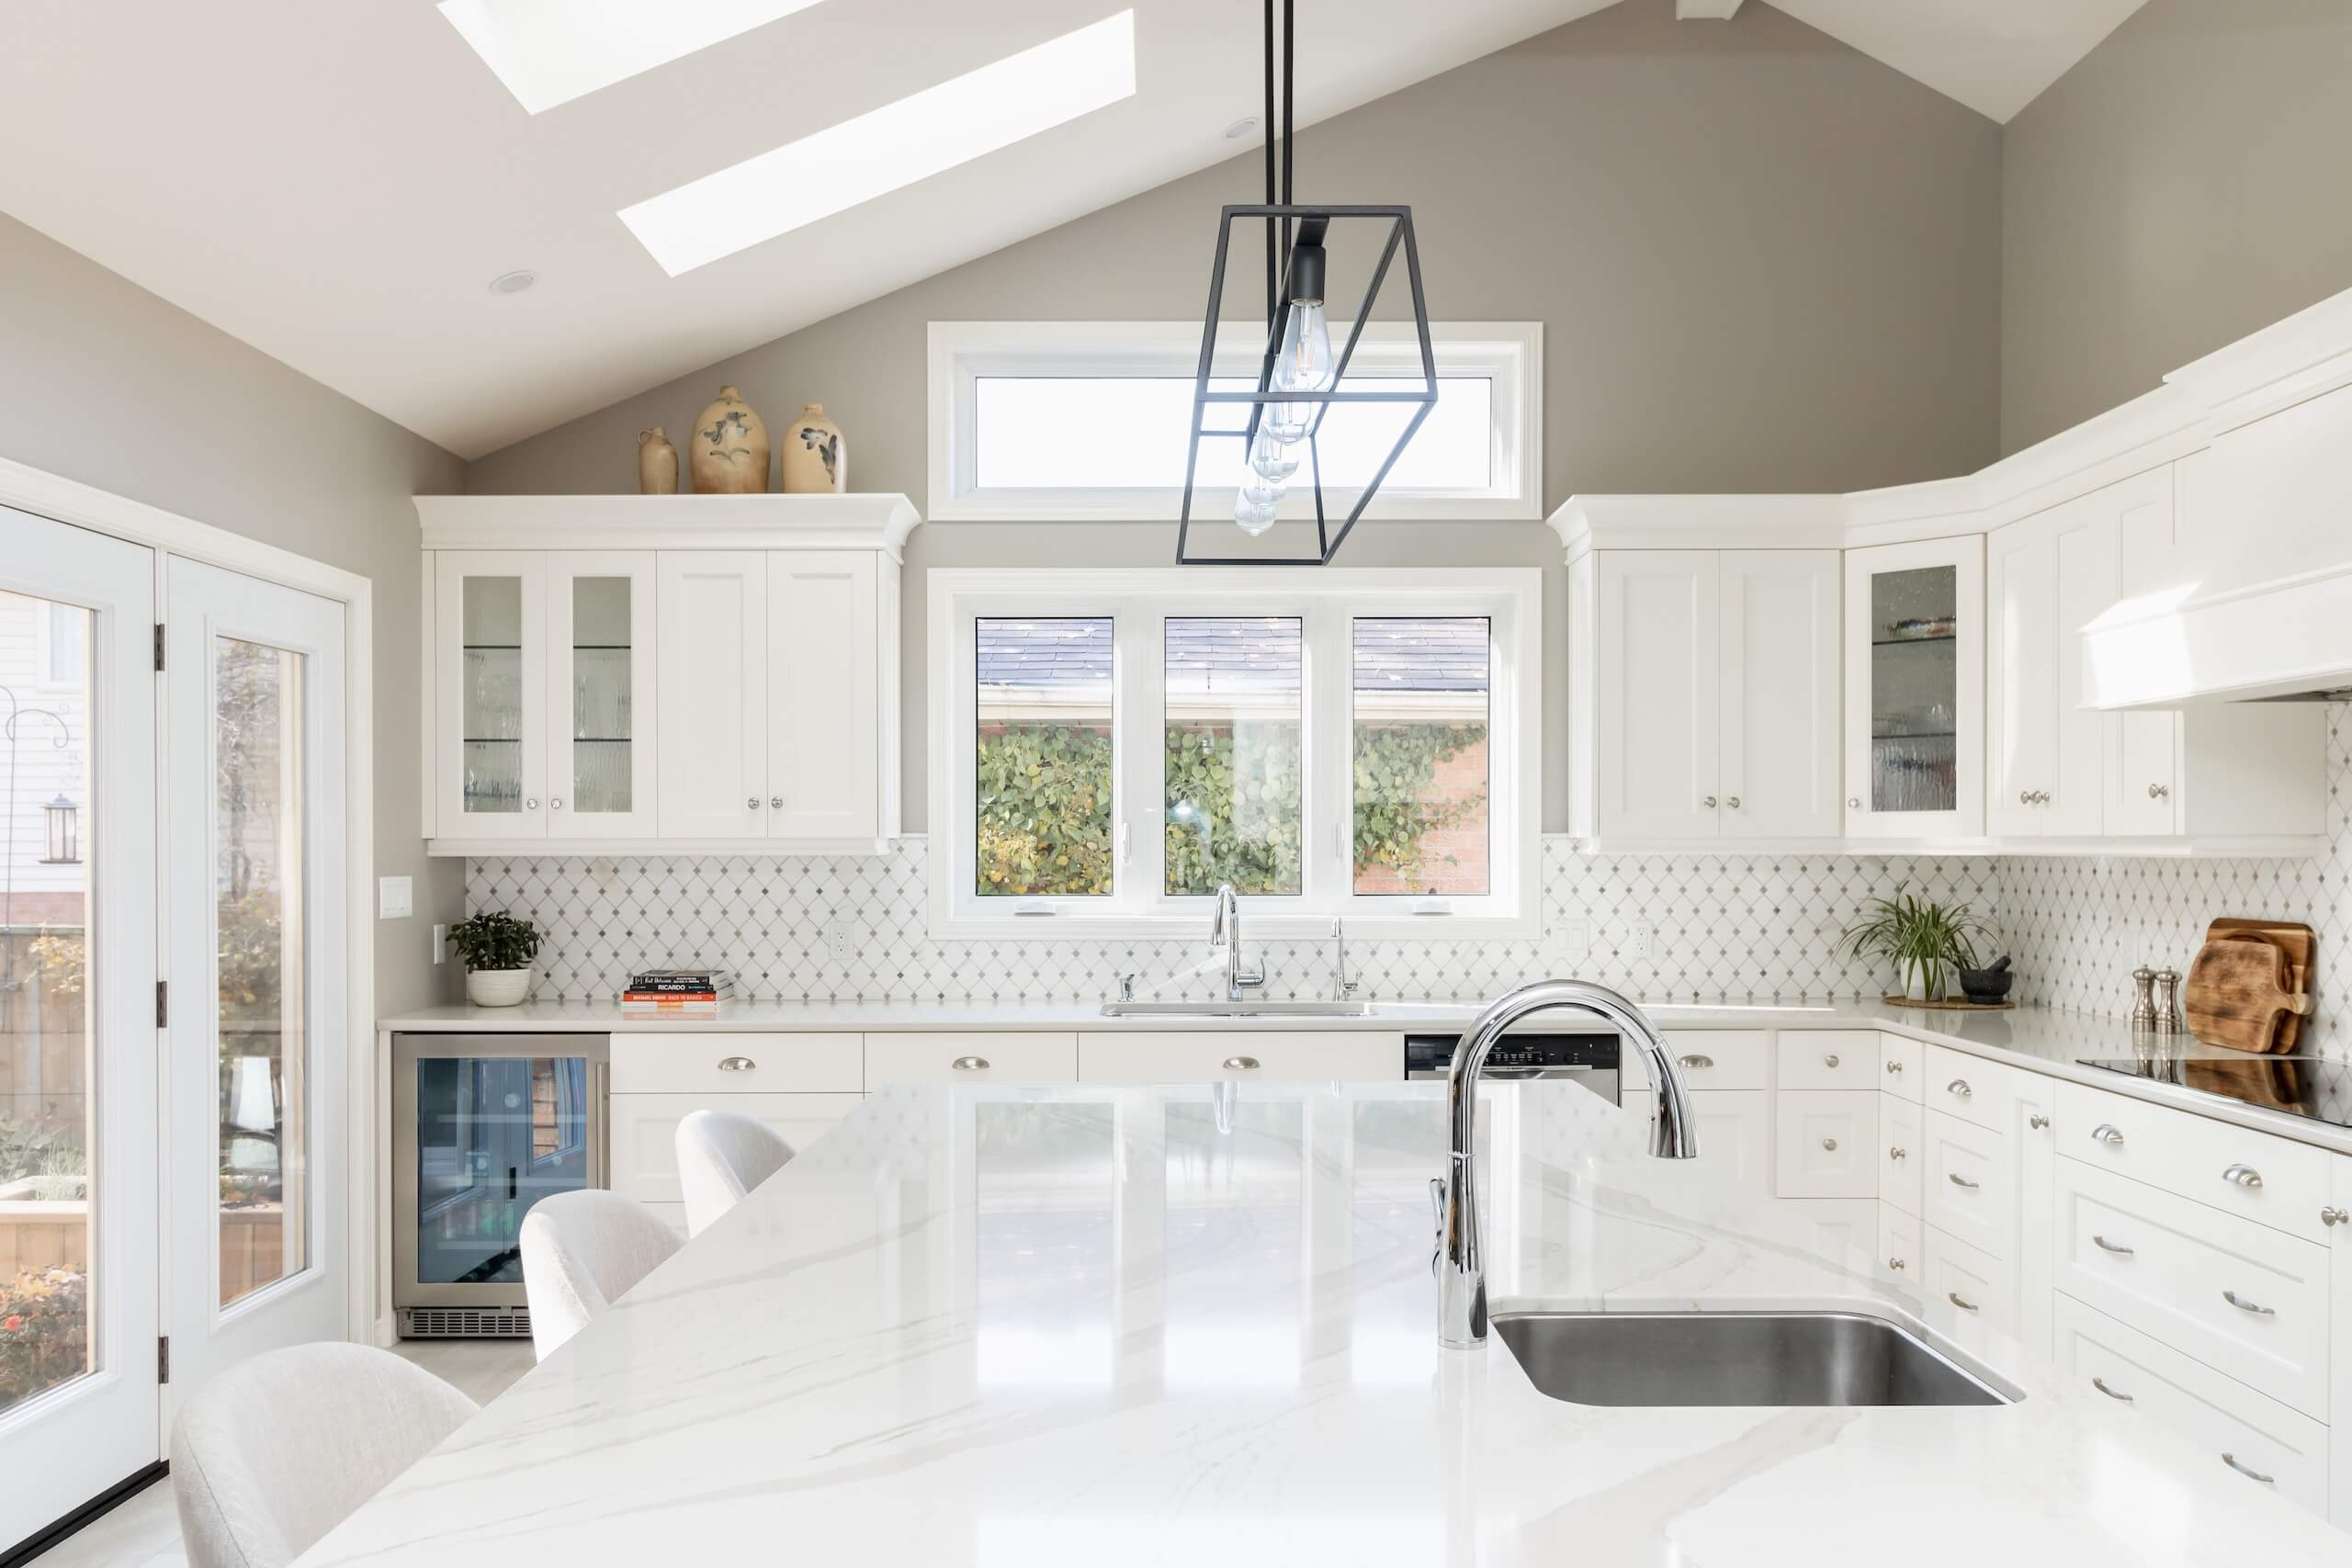 8 Things to Expect During Your Home Renovation